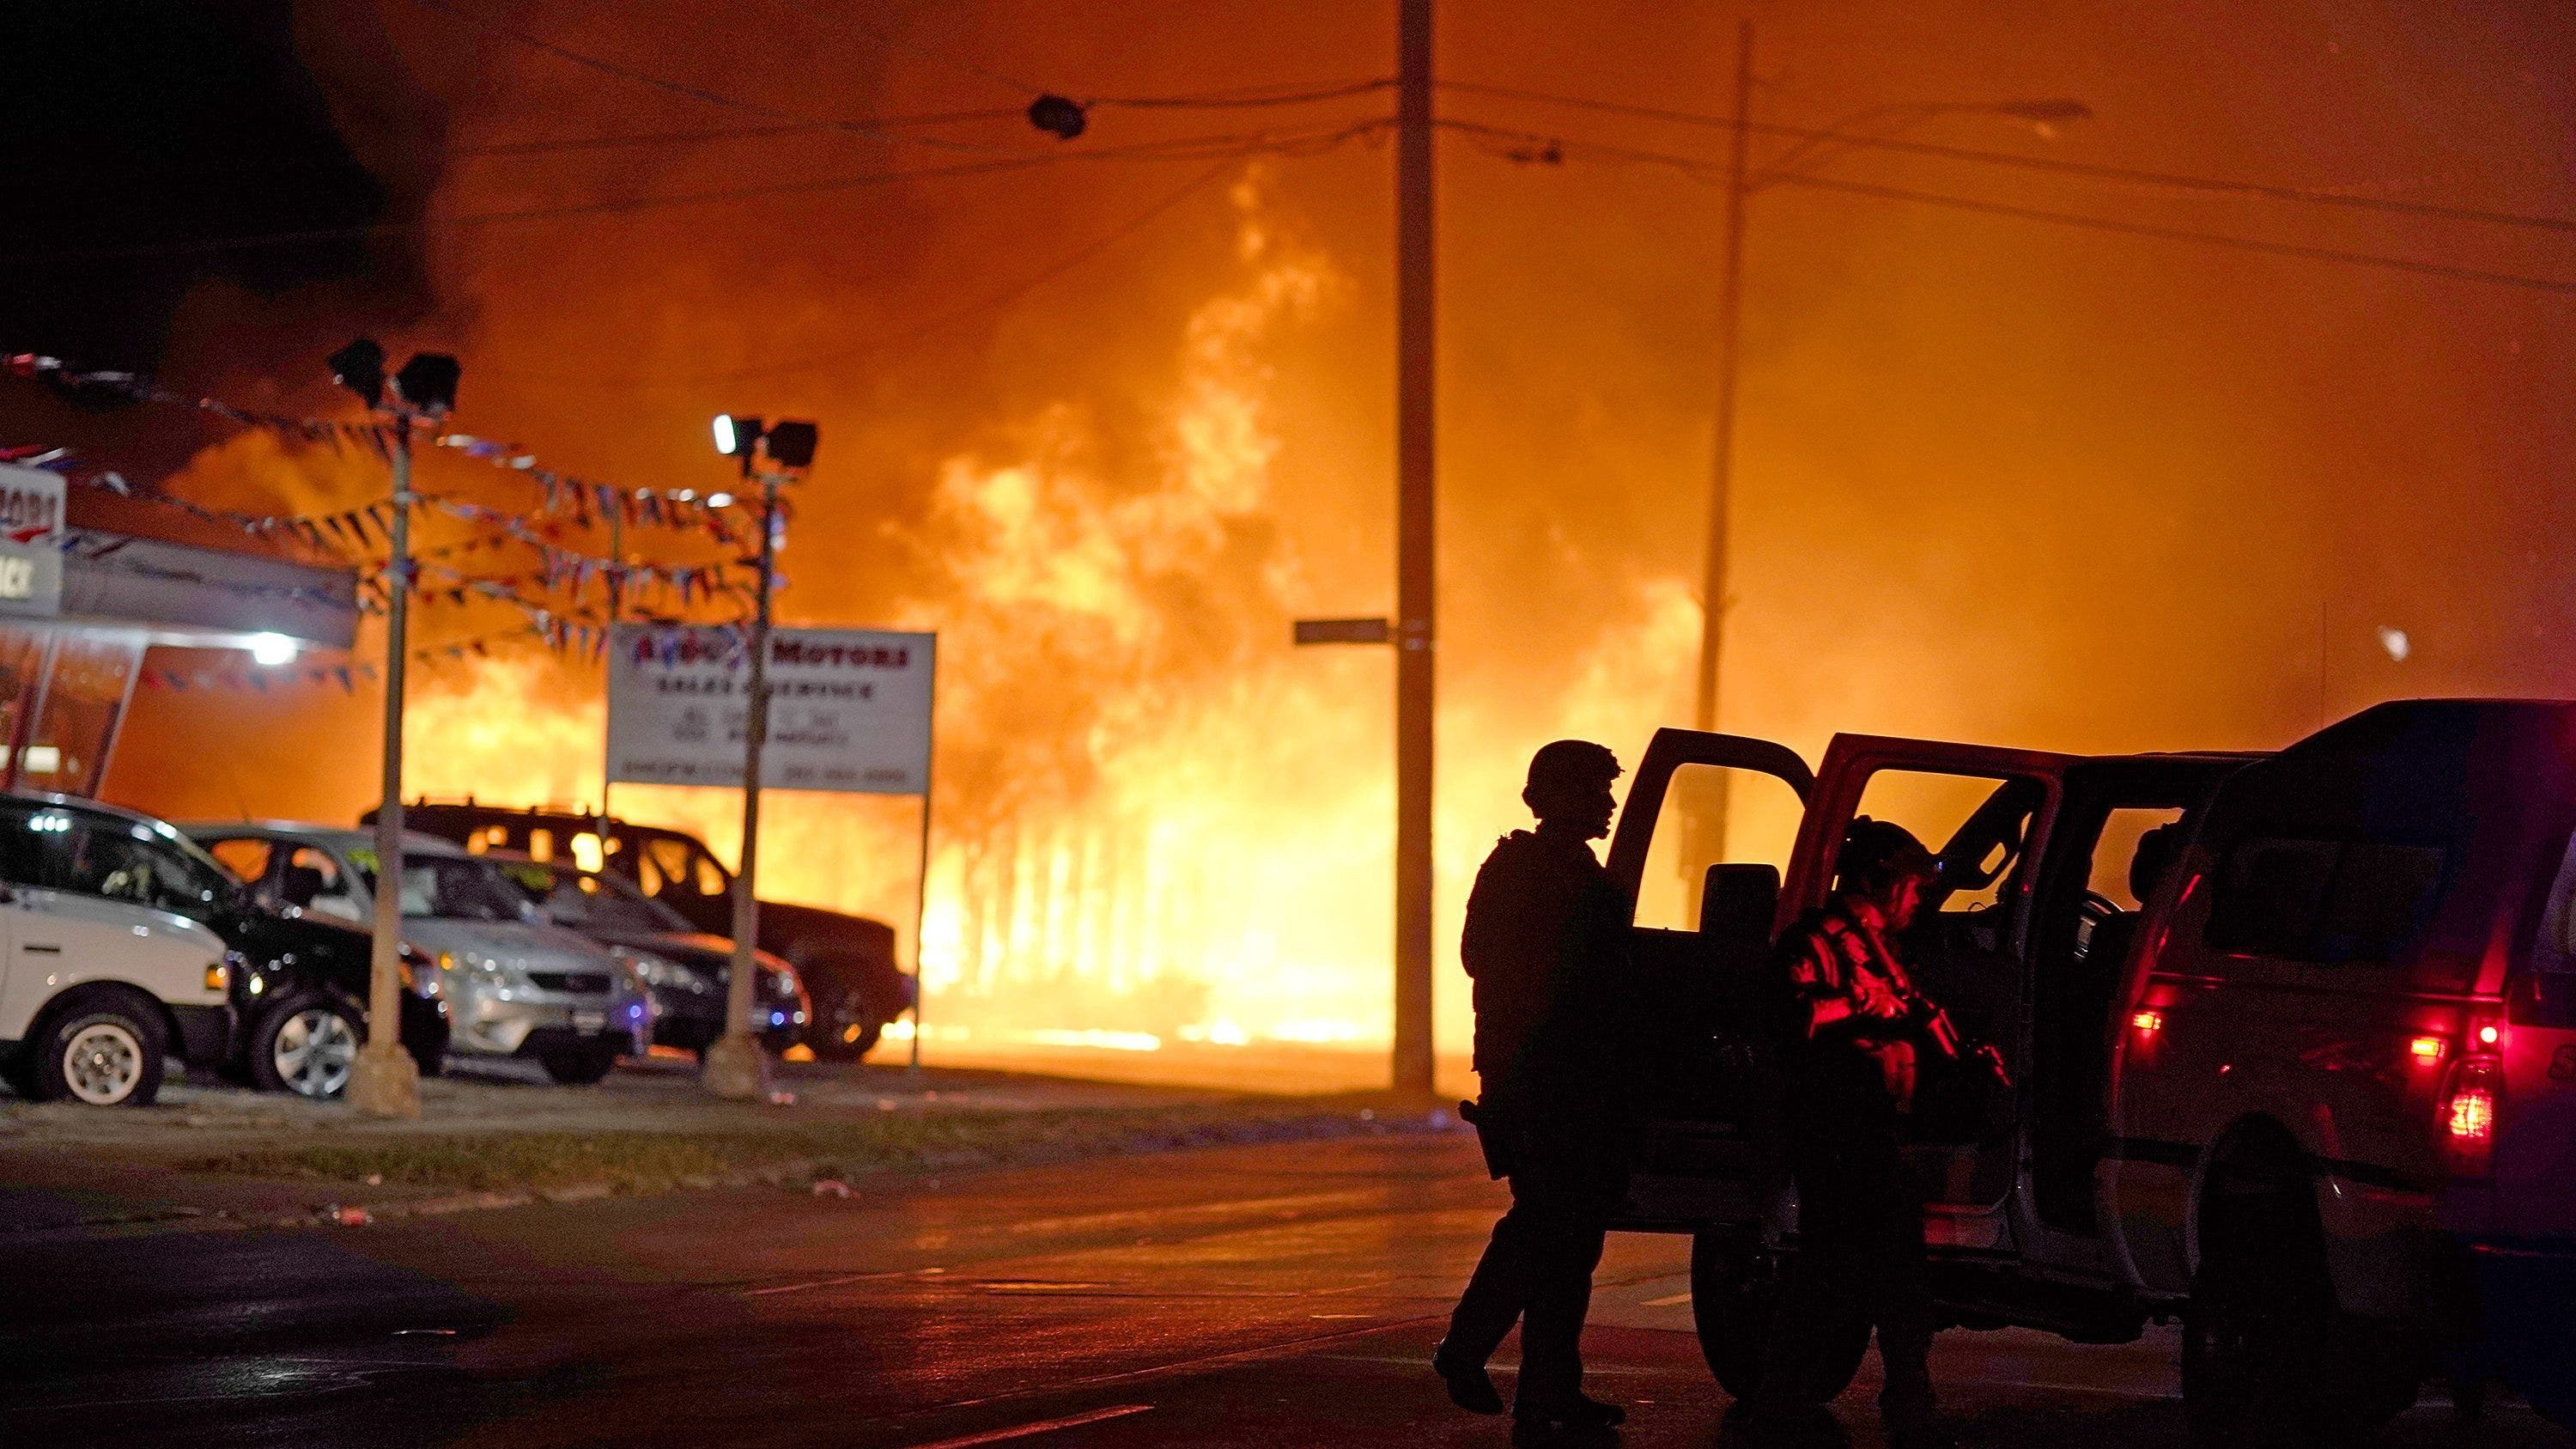 Kenosha Car Dealership Sustained 1 5m In Damage After First Night Of Riots Report Says Fox Business